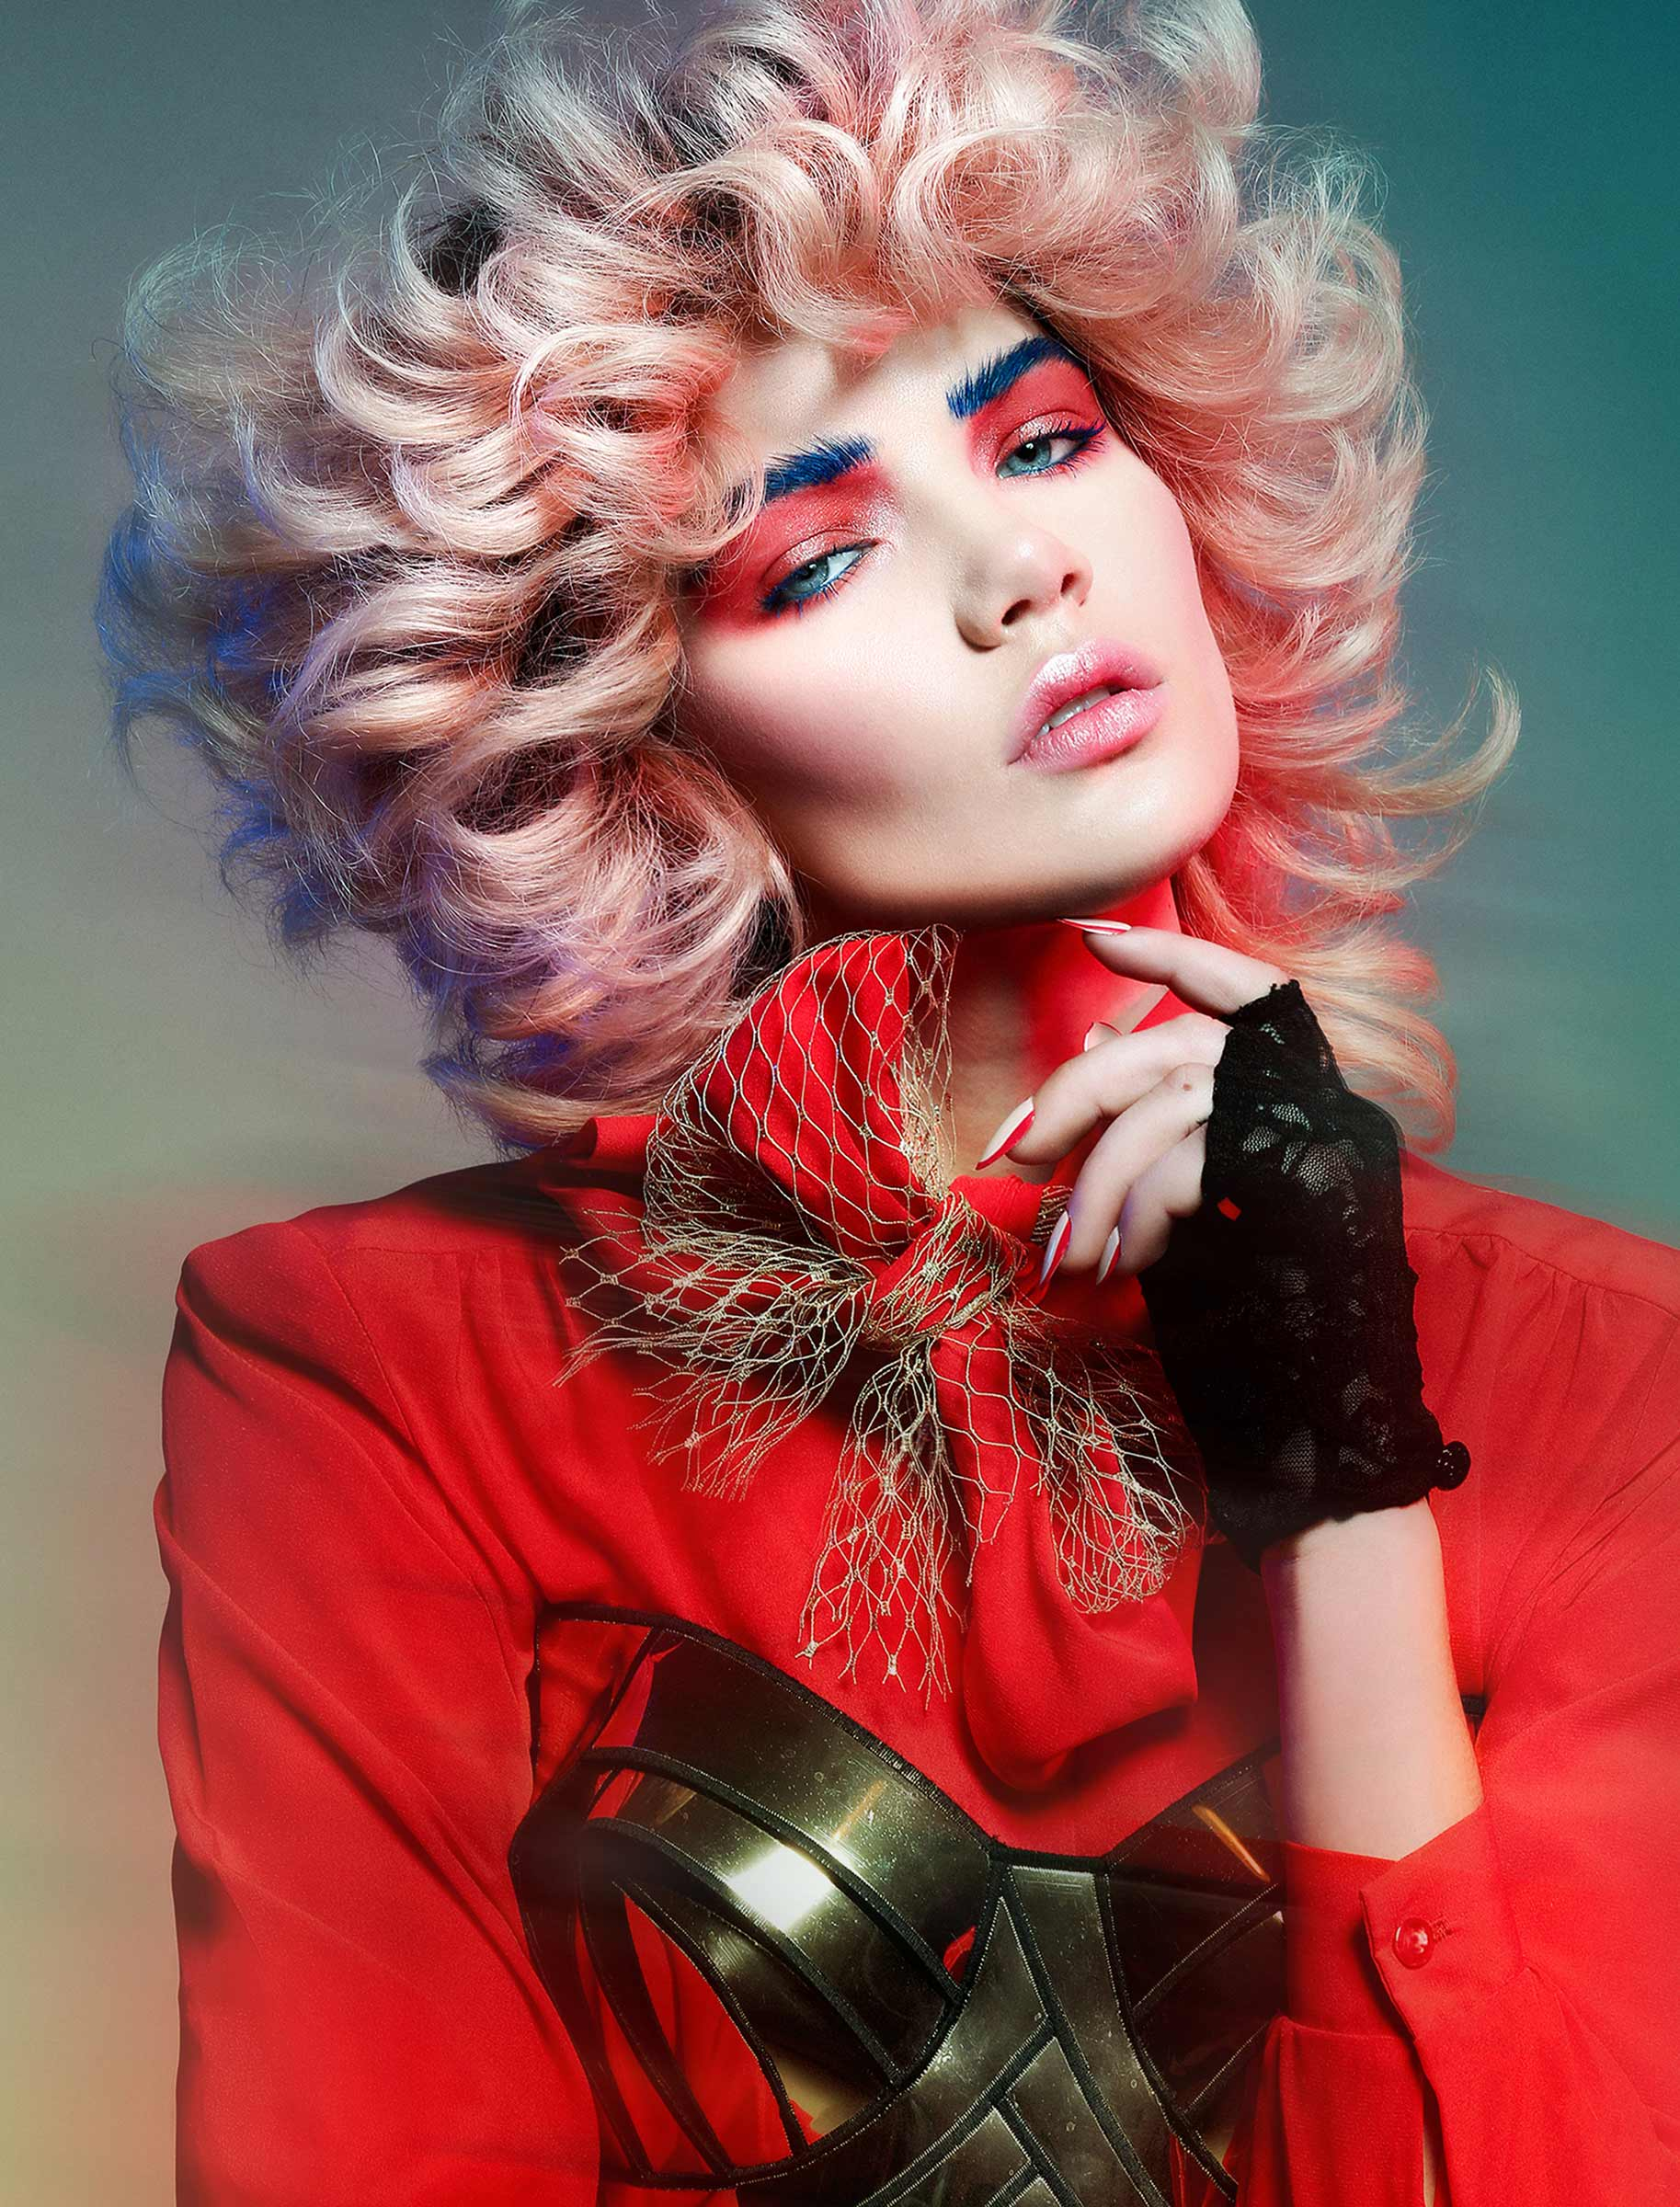 hair-photography-paula-tizzard-gels-seventies-competition-naha-contessa-julie-vriesinga-entrenous